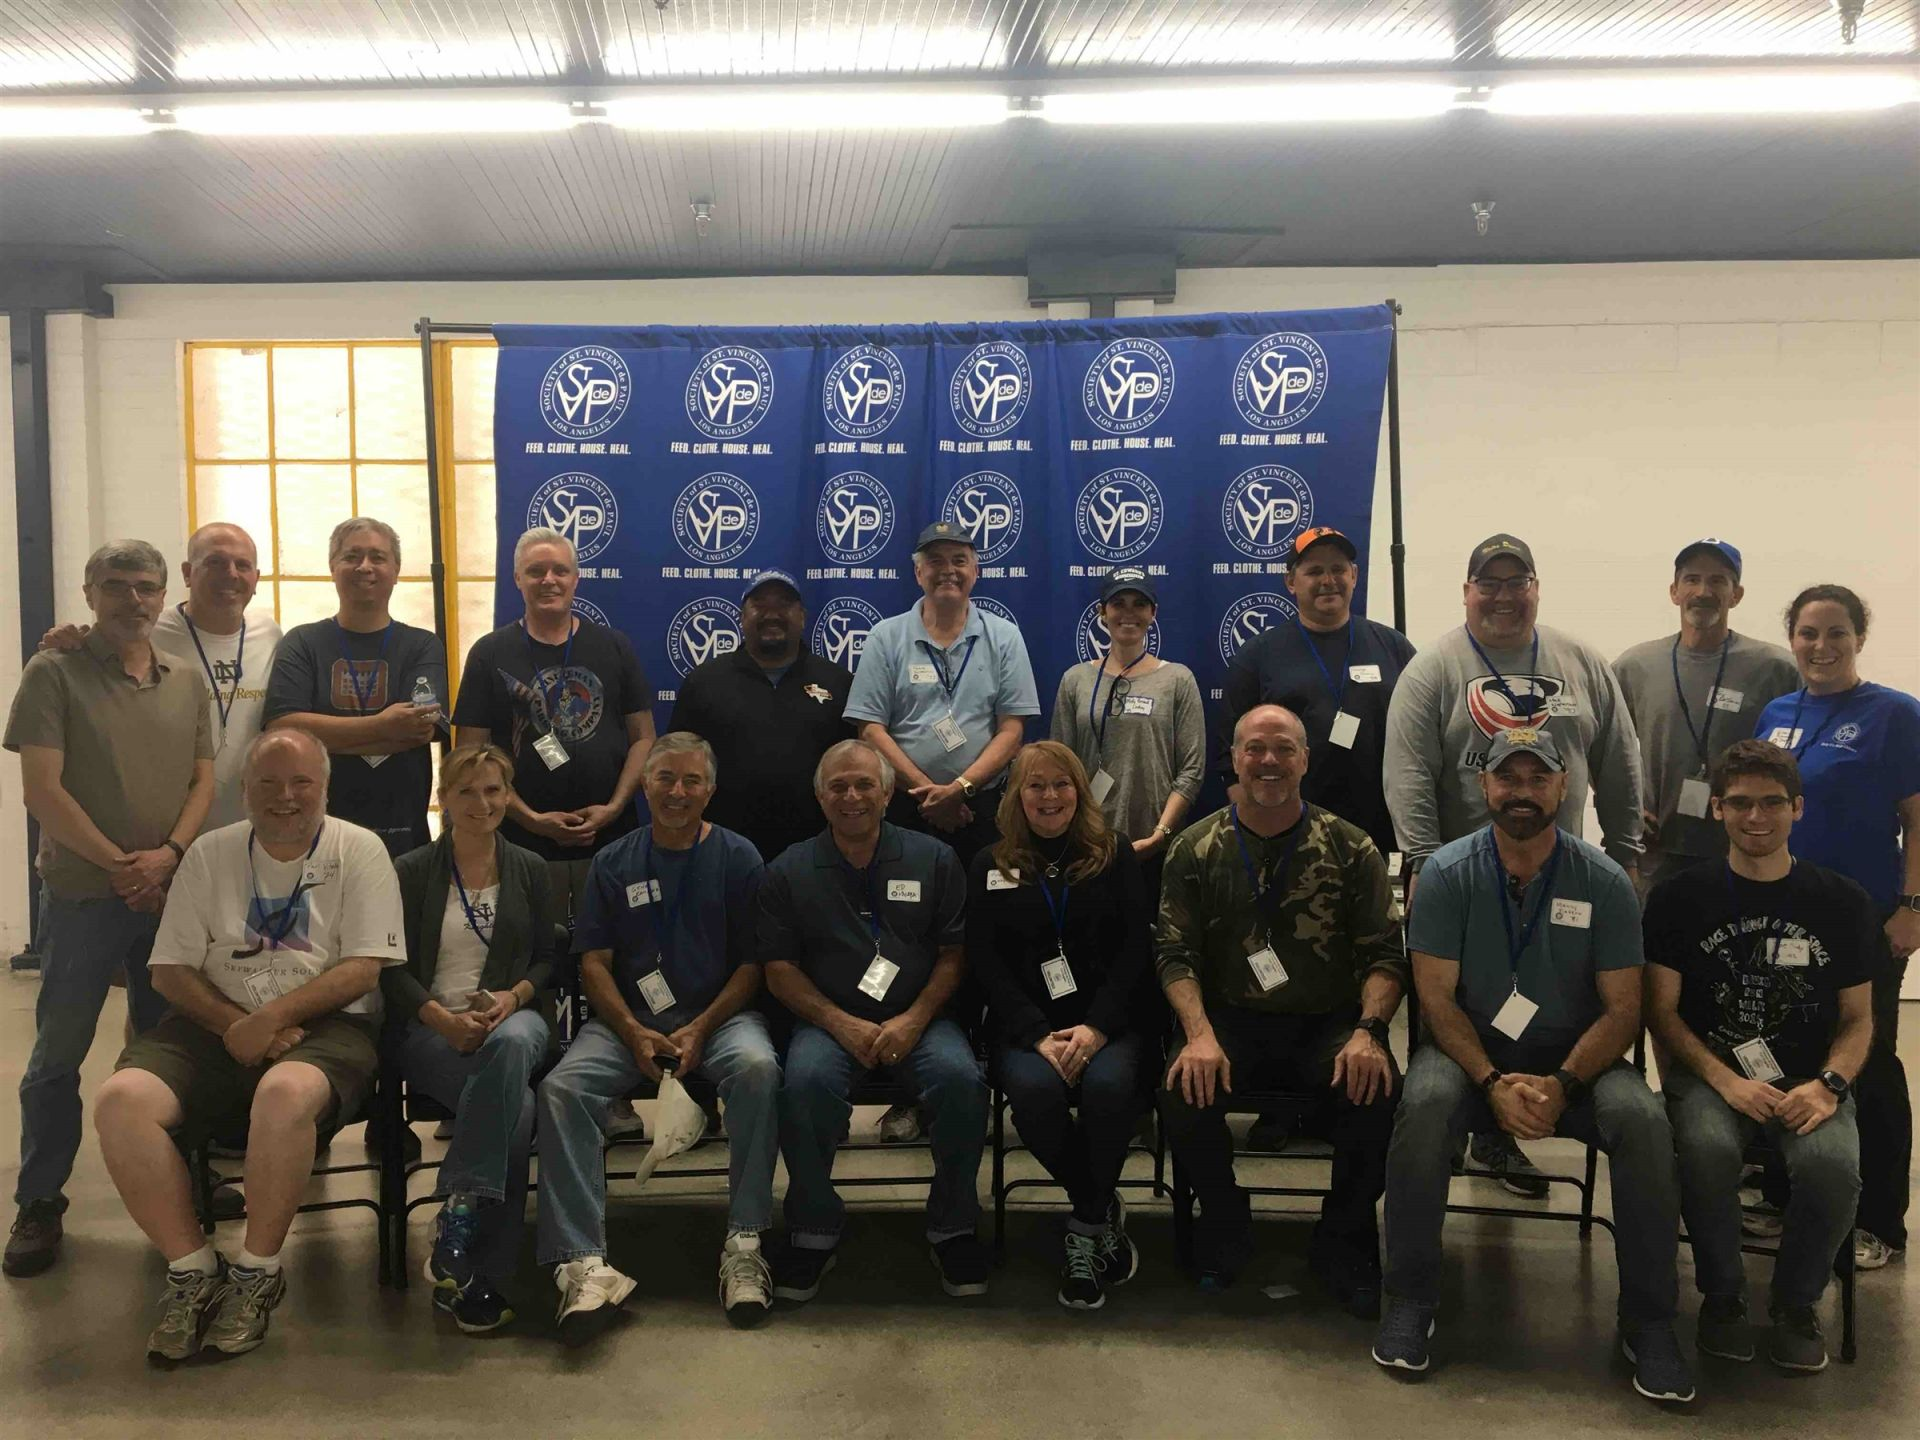 Notre Dame alums from LA and Orange County gathered at the Society of St. Vincent de Paul near Downtown LA  Saturday, April 28 for a day of service. More pictures to come!